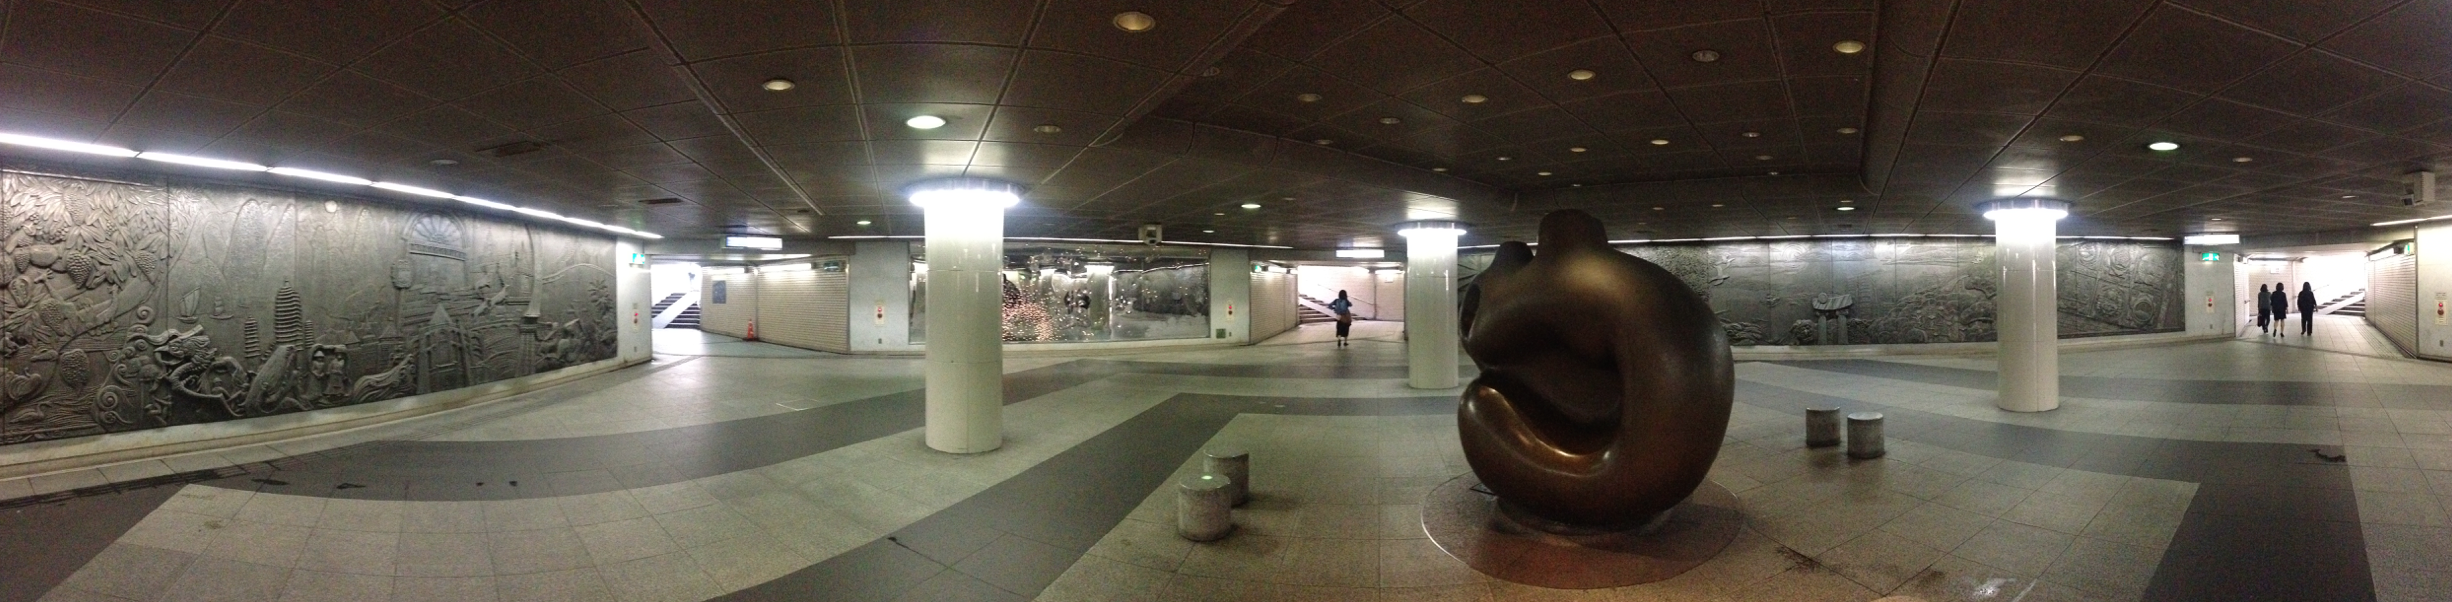 Japan: making under-passes funky since aaaaages ago